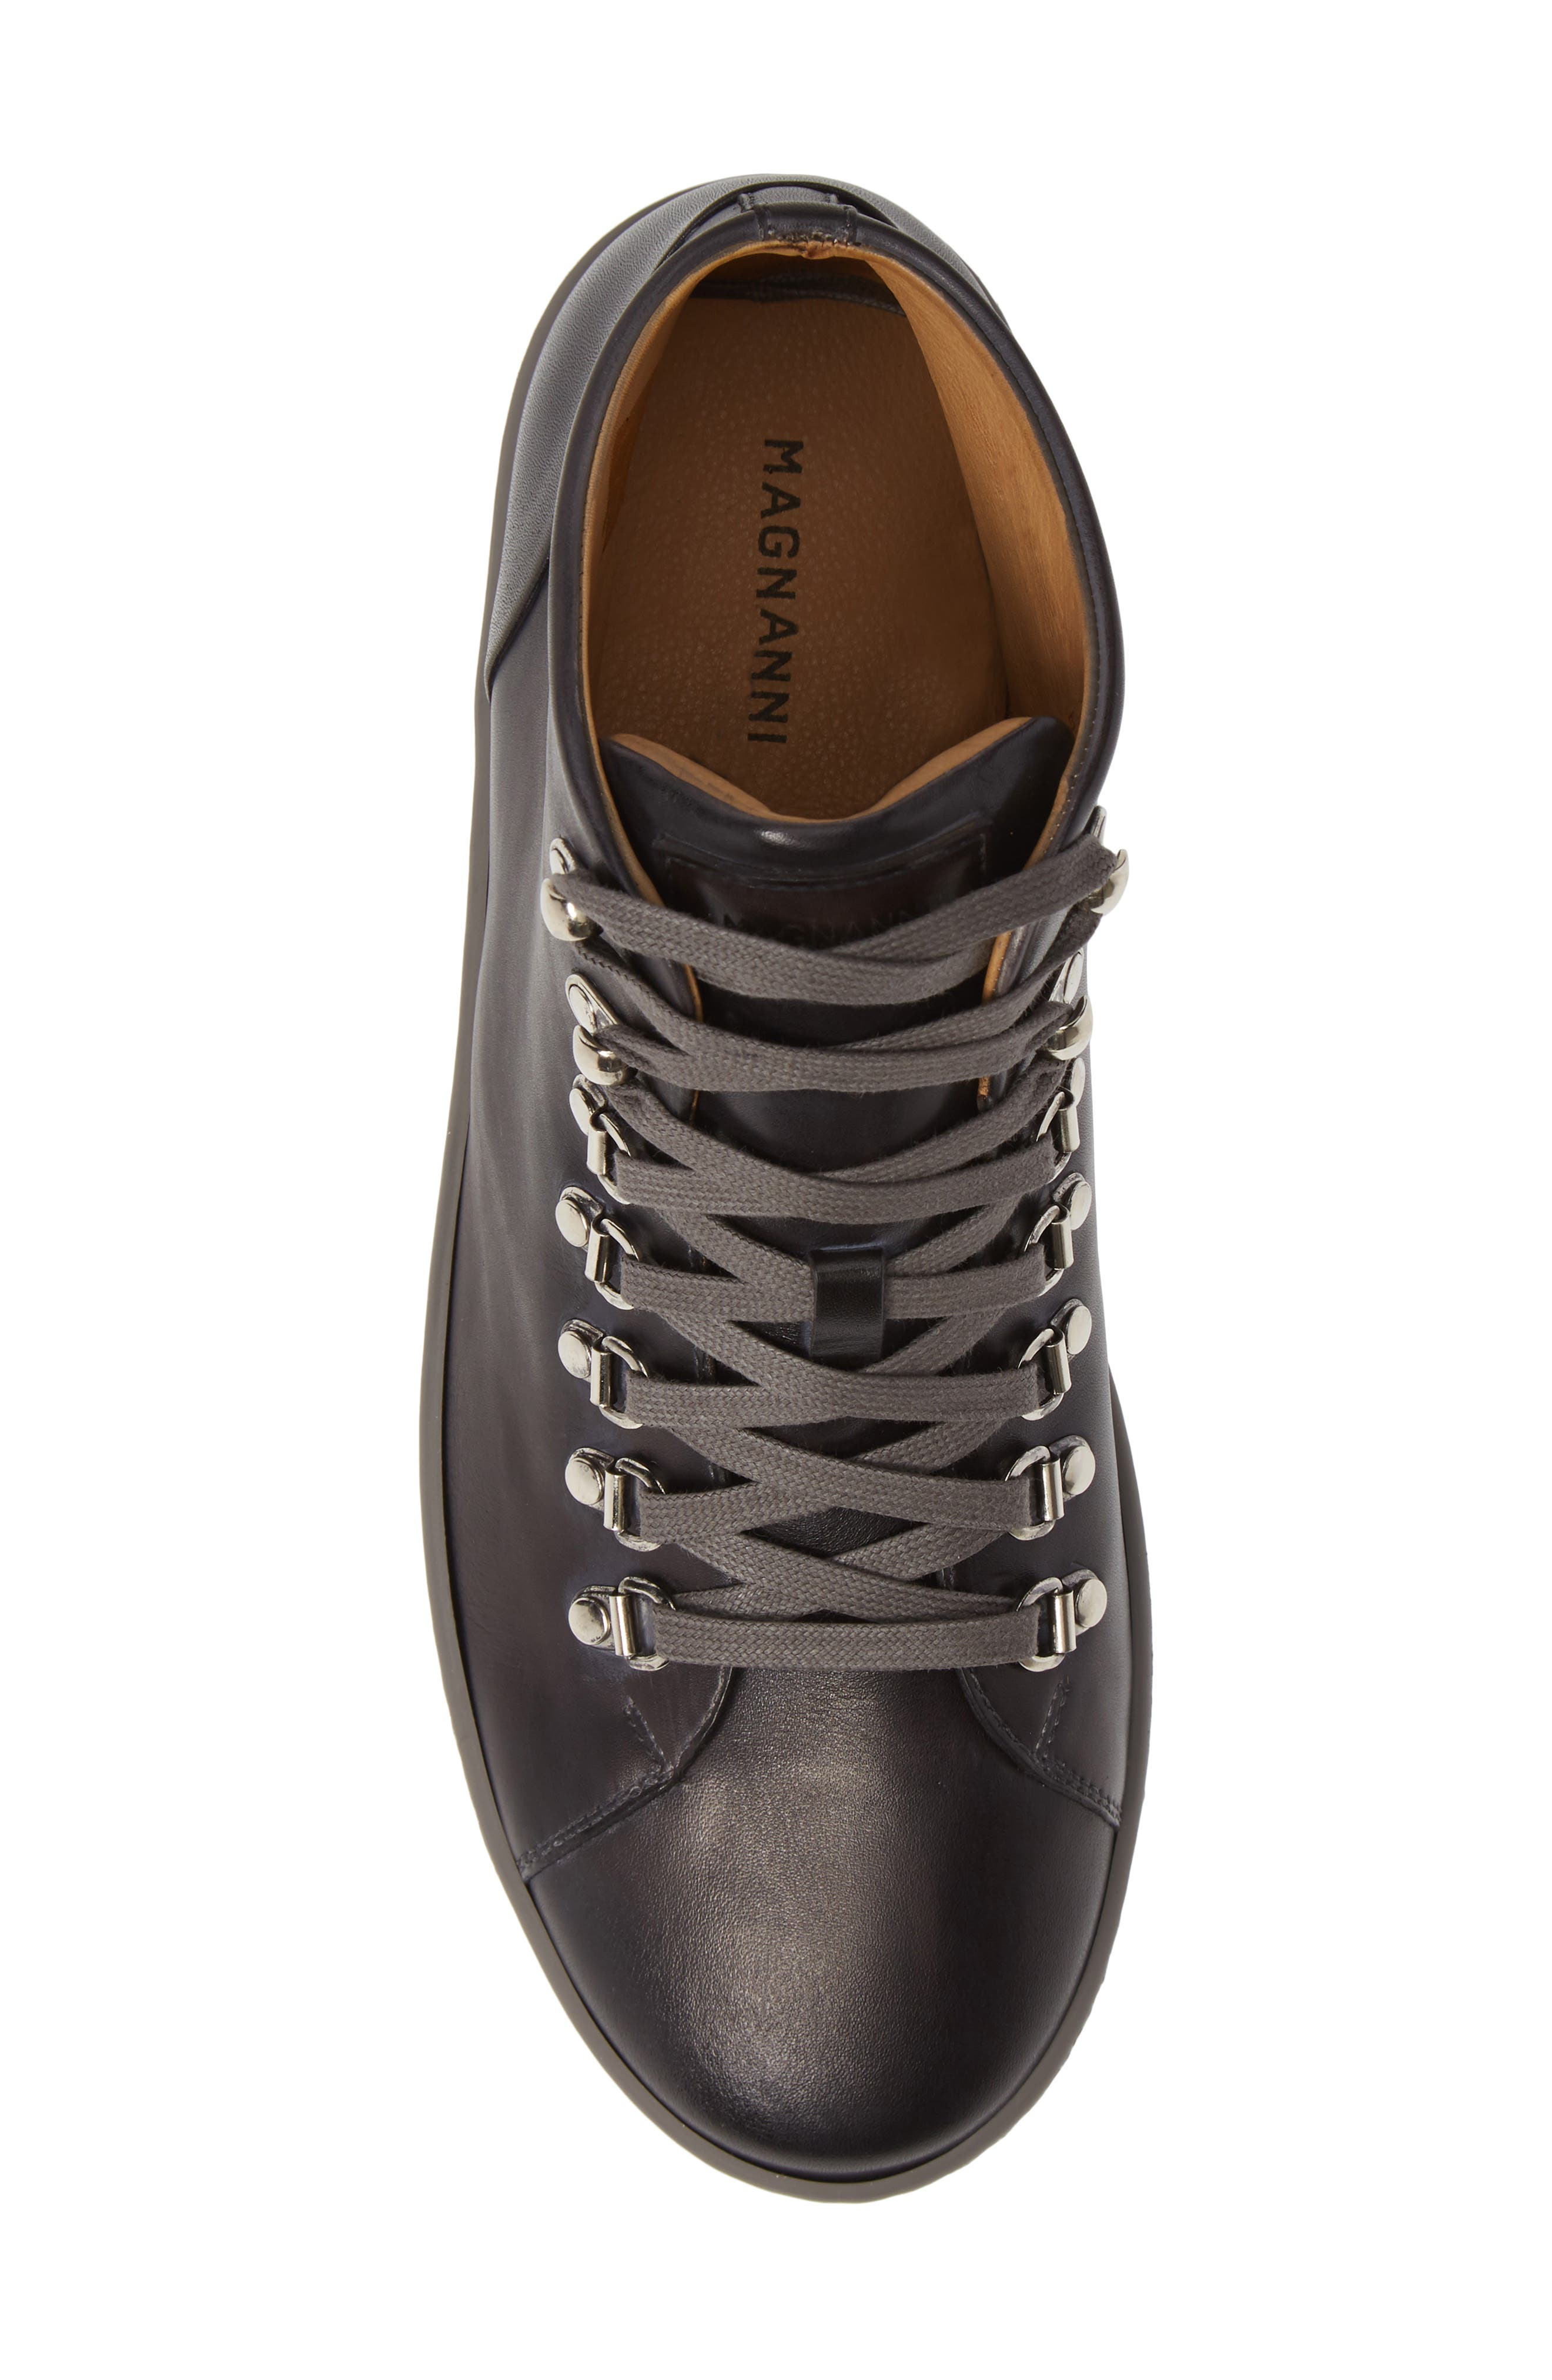 MAGNANNI,                             Rocco Sneaker,                             Alternate thumbnail 5, color,                             020